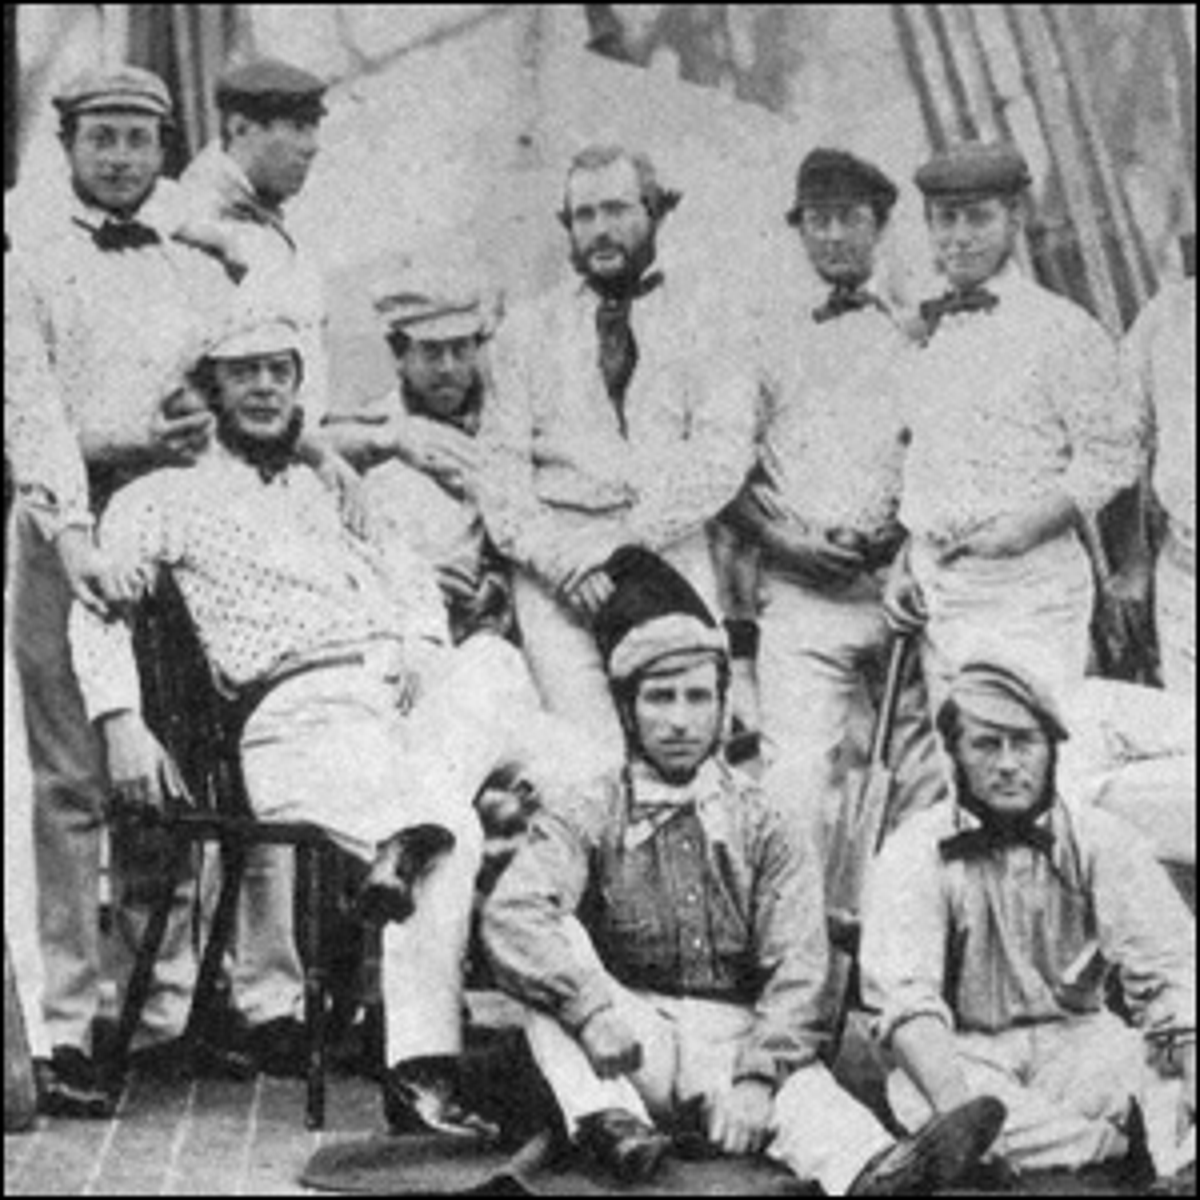 The 1859 English cricket team traveling to North America to play.